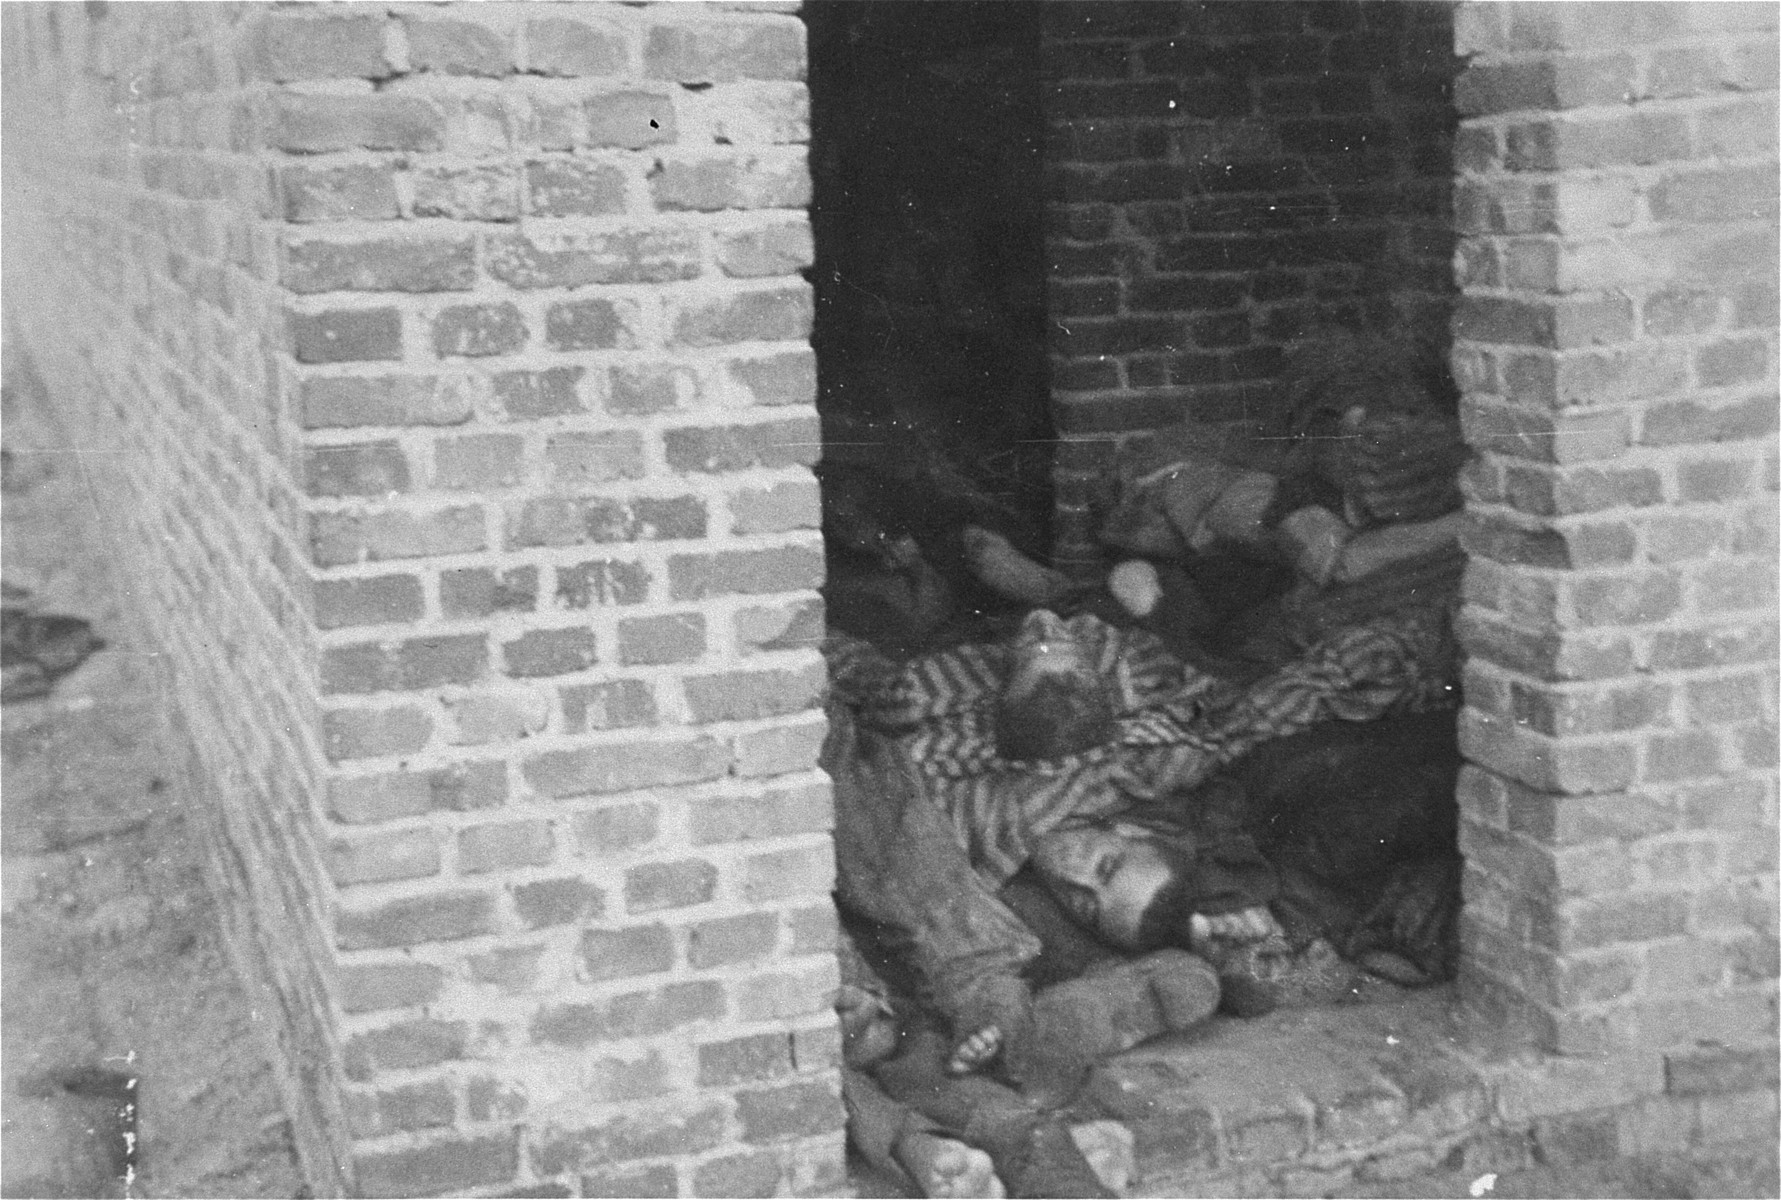 The bodies of prisoners are piled on top of one another in the doorway of a barracks in Woebbelin.